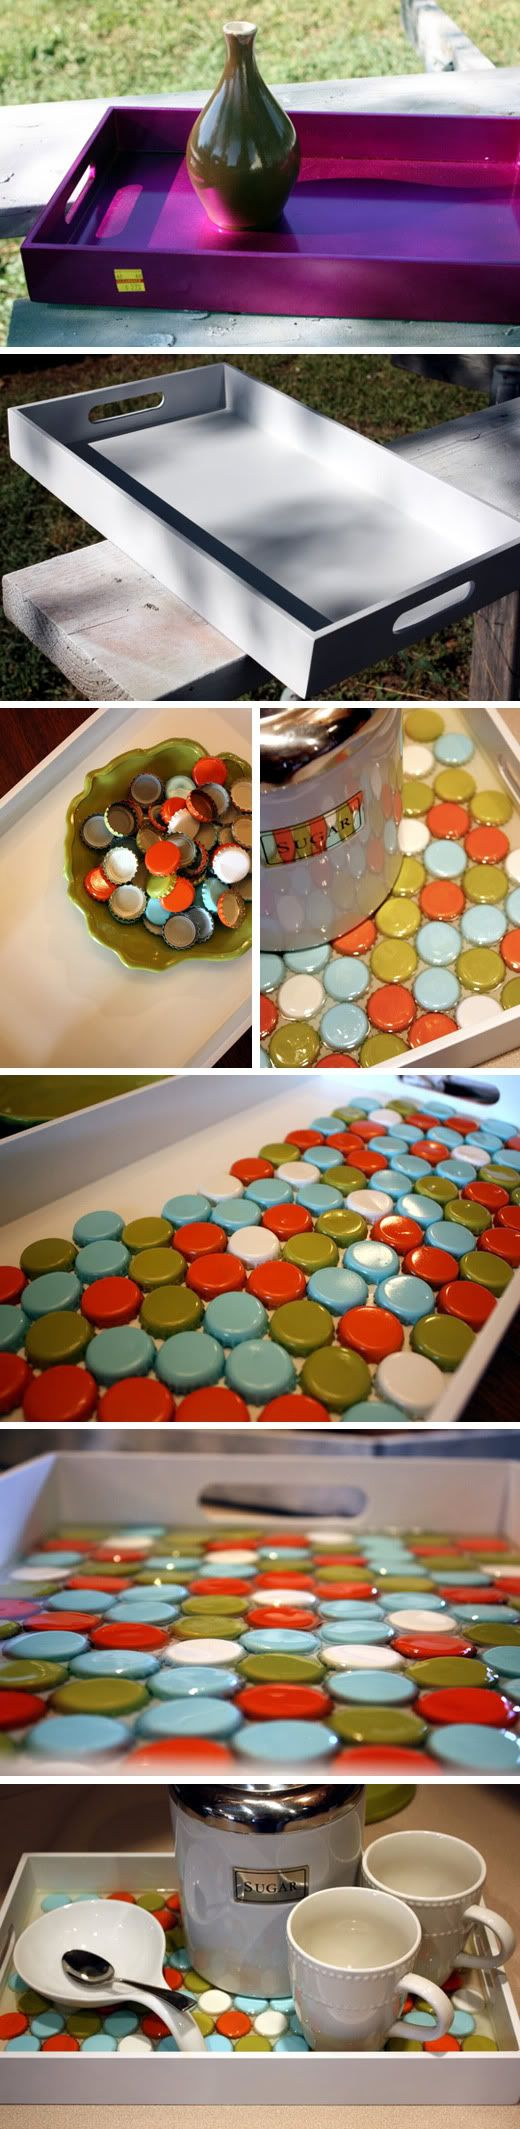 DIY: Very cool Bottle Cap Tray. I thought this was a pretty sweet idea from {Apartment Therapy} of something to do with a collection of bottle caps - either paint them or keep the branding from your beverage of choice. This is a perfect project that can start with a cool tray picked up from a swap meet, thrift store or if you have an old one lying around that needs some sprucing up.